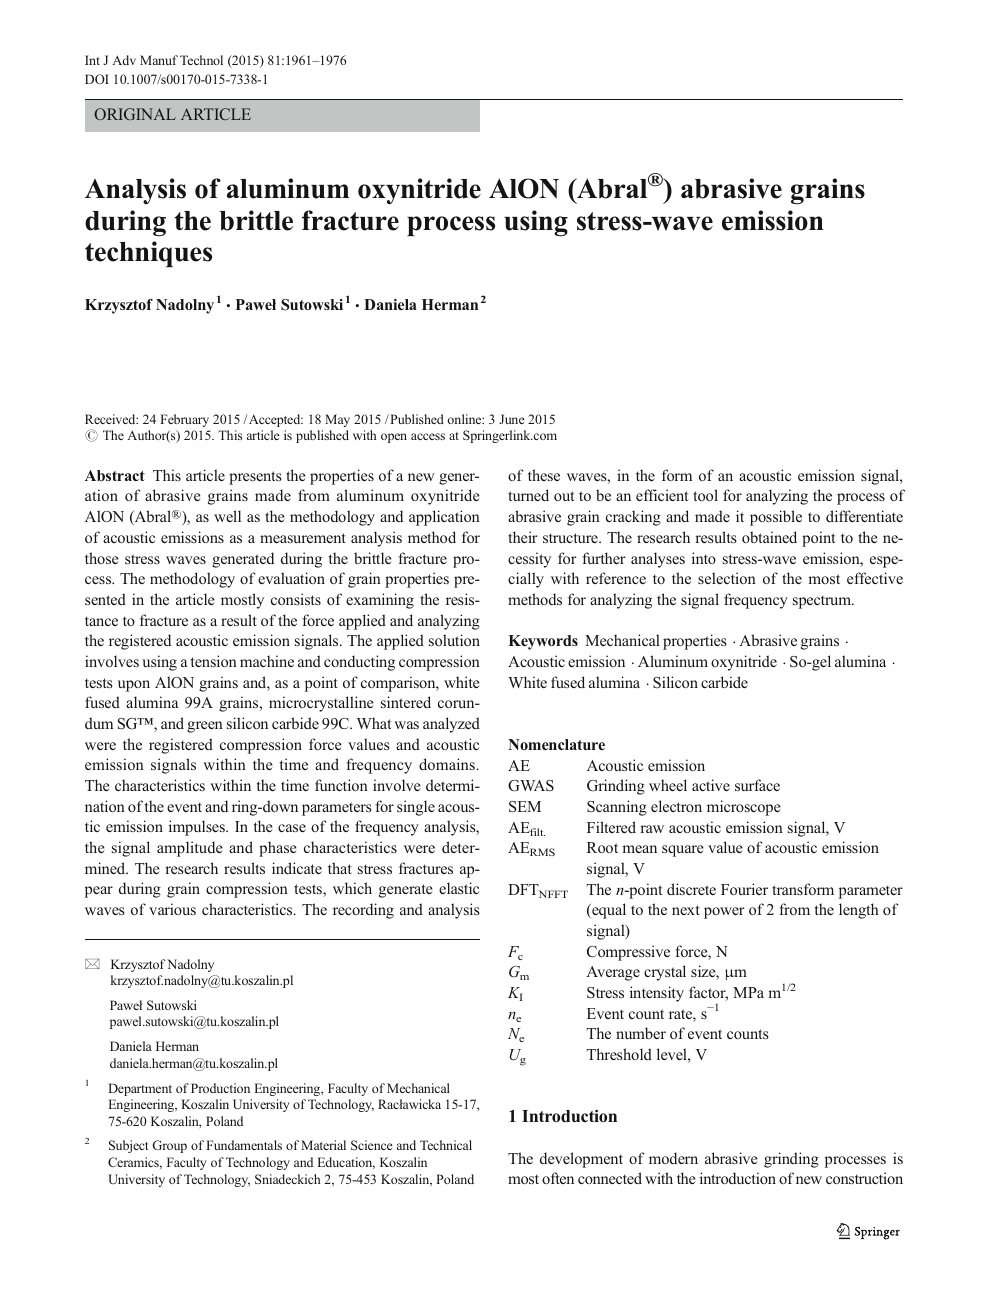 Analysis of aluminum oxynitride AlON (Abral®) abrasive grains during